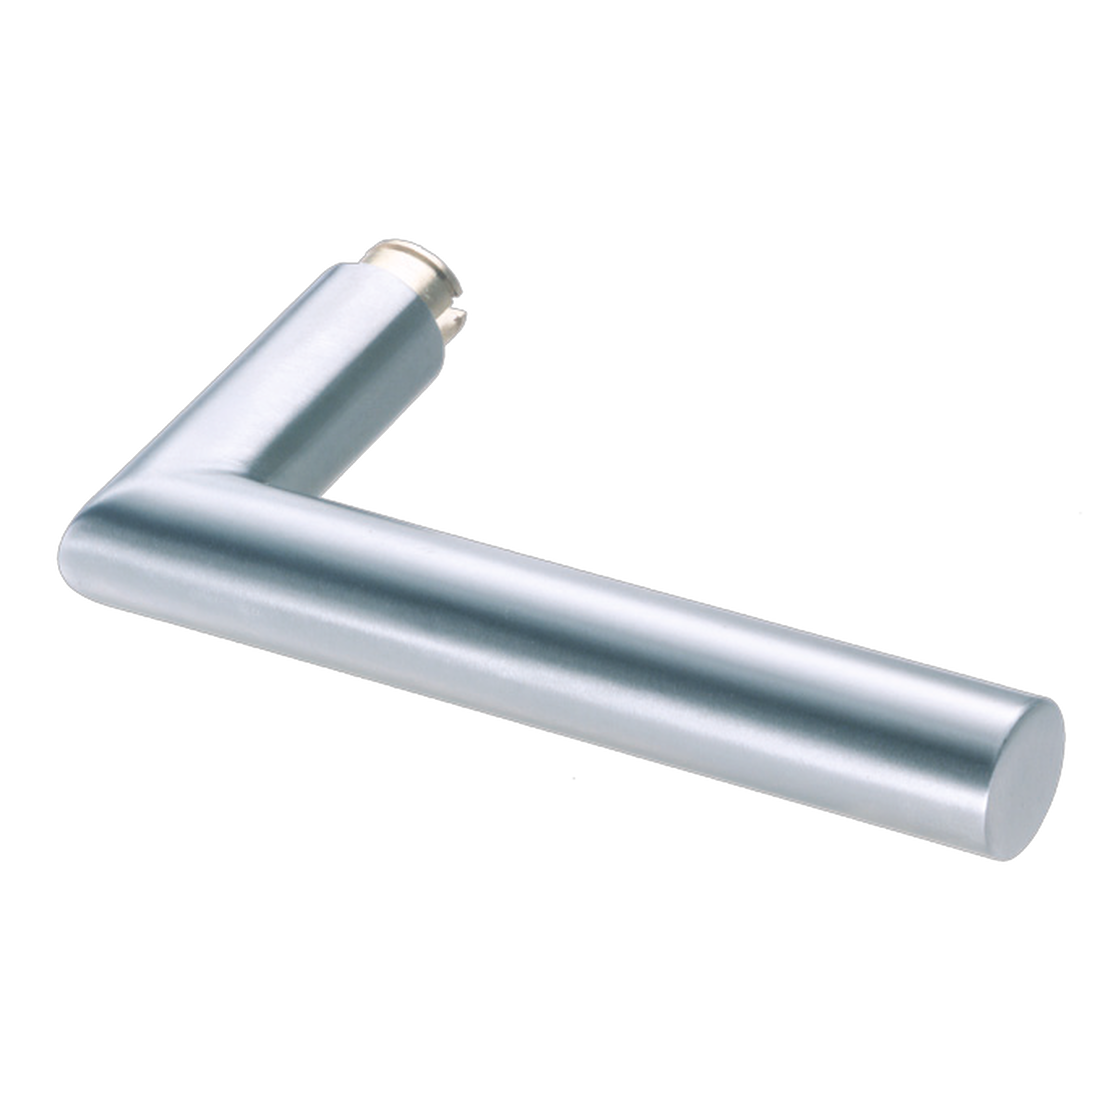 JAZZ LEVER HANDLE SETS, L-FORM ANGLED, SATIN STAINLESS STEEL